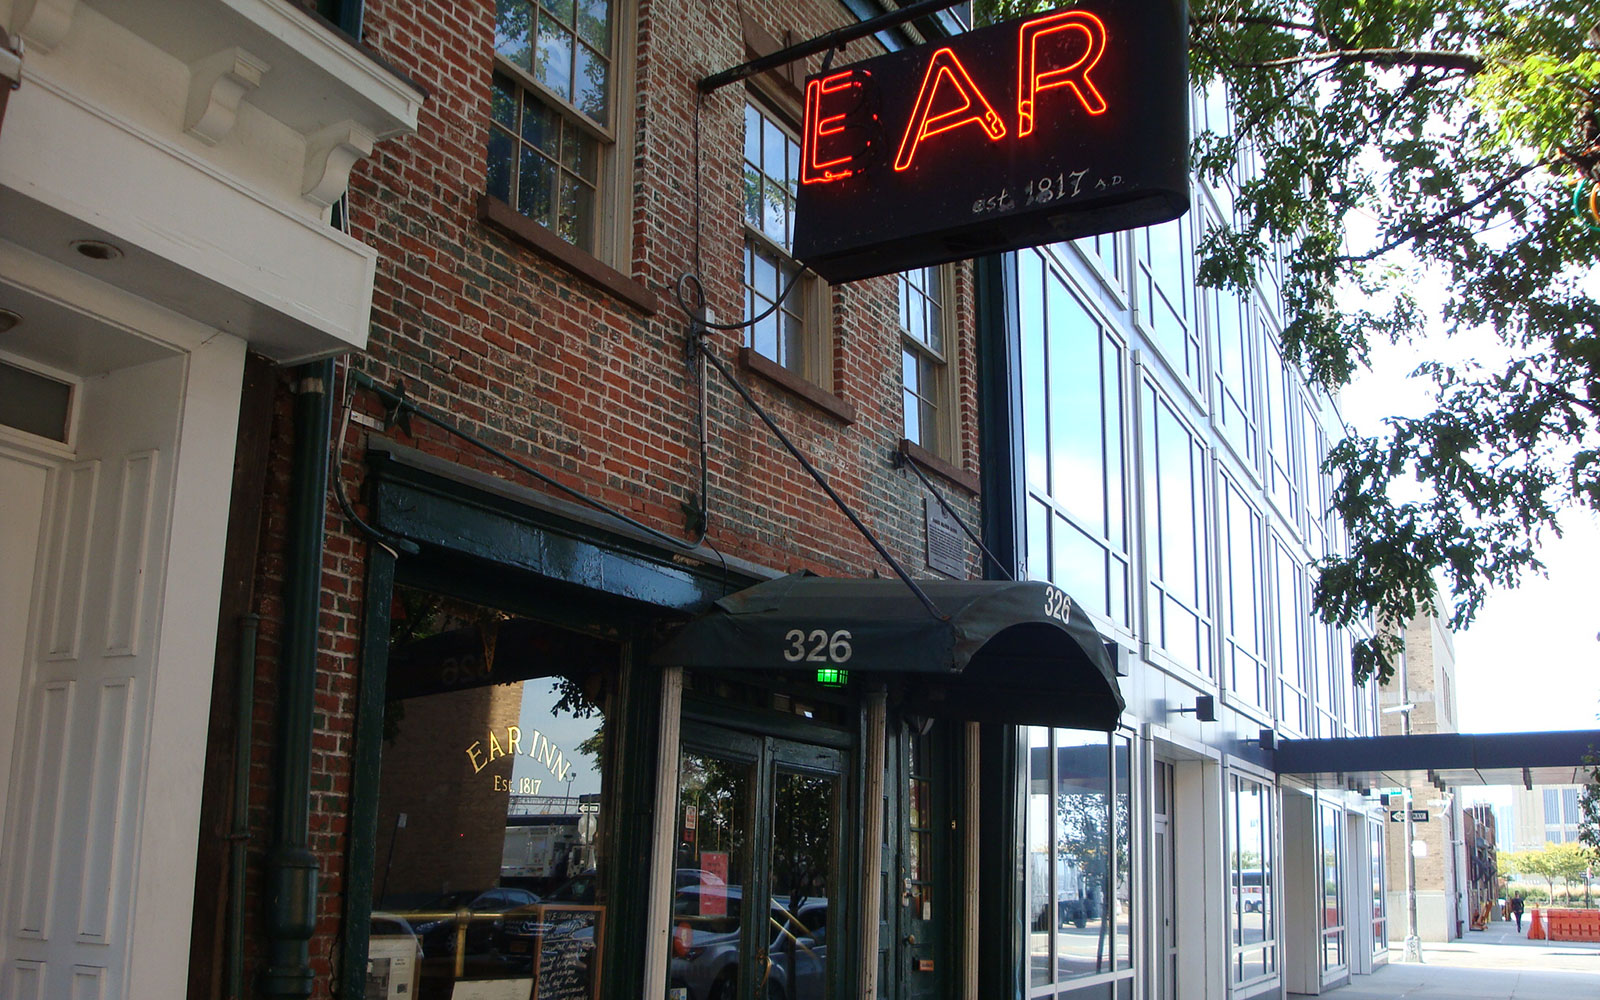 Best Old Restaurants and Bars in NYC: Ear Inn